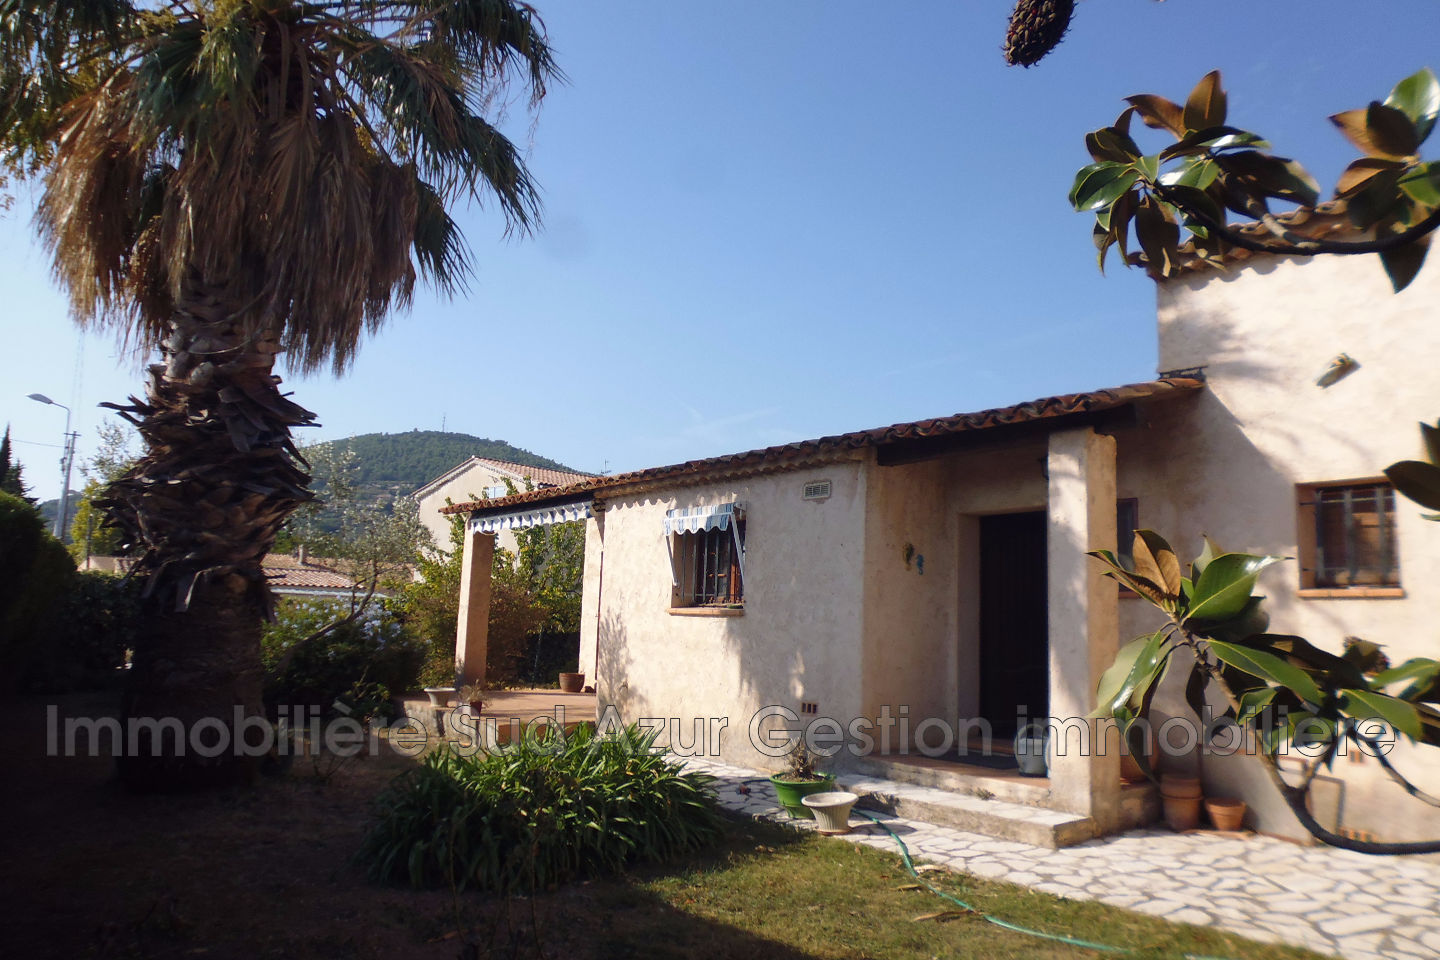 Vente maison villa proven ale solli s pont 83210 395 000 for Location garage sollies pont